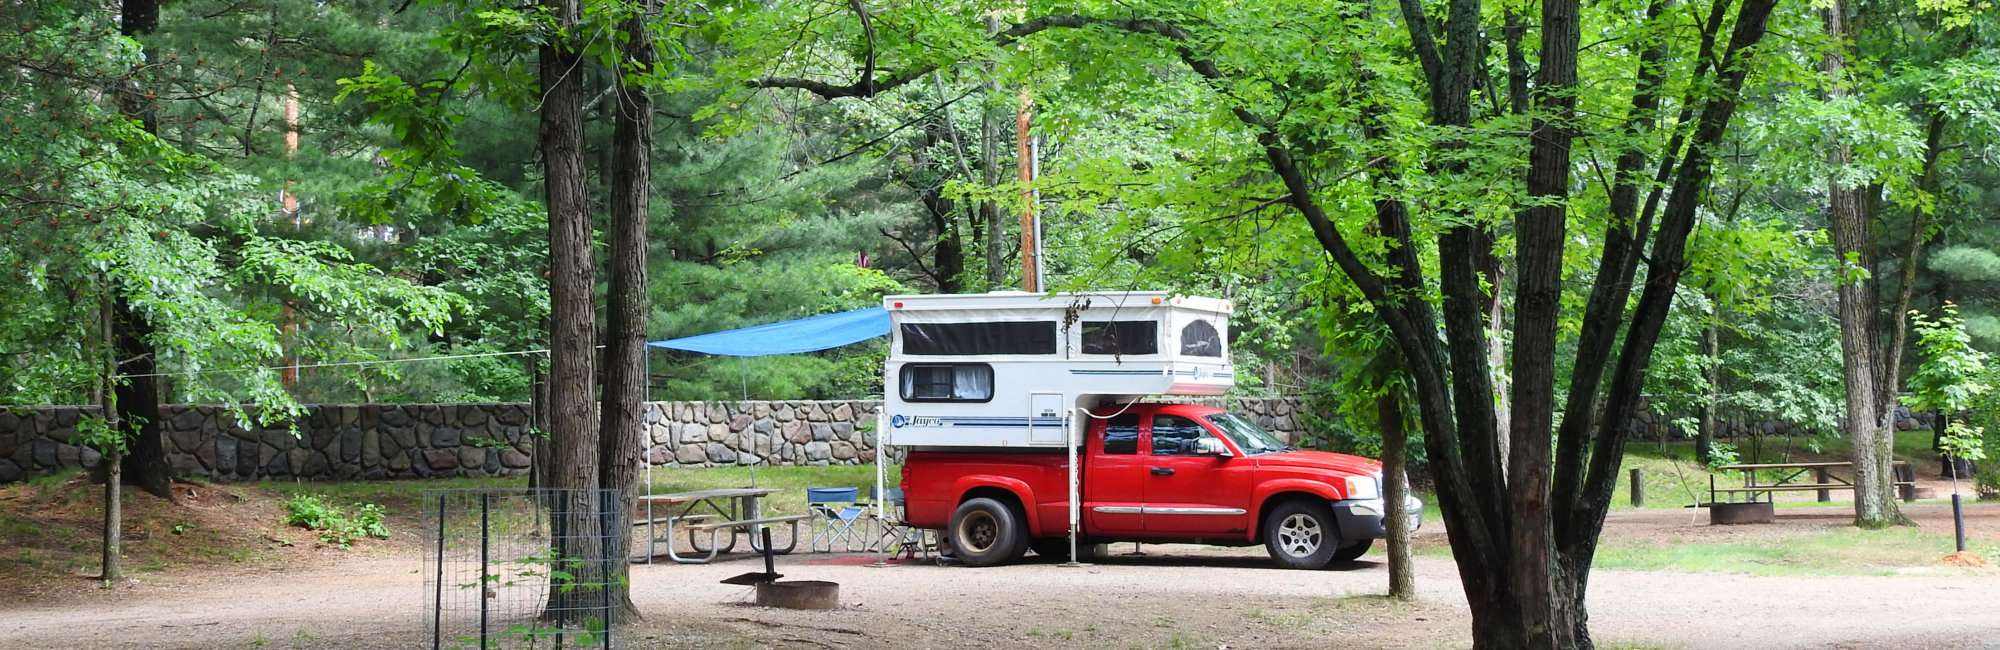 Slide-Lodging-Campgrounds